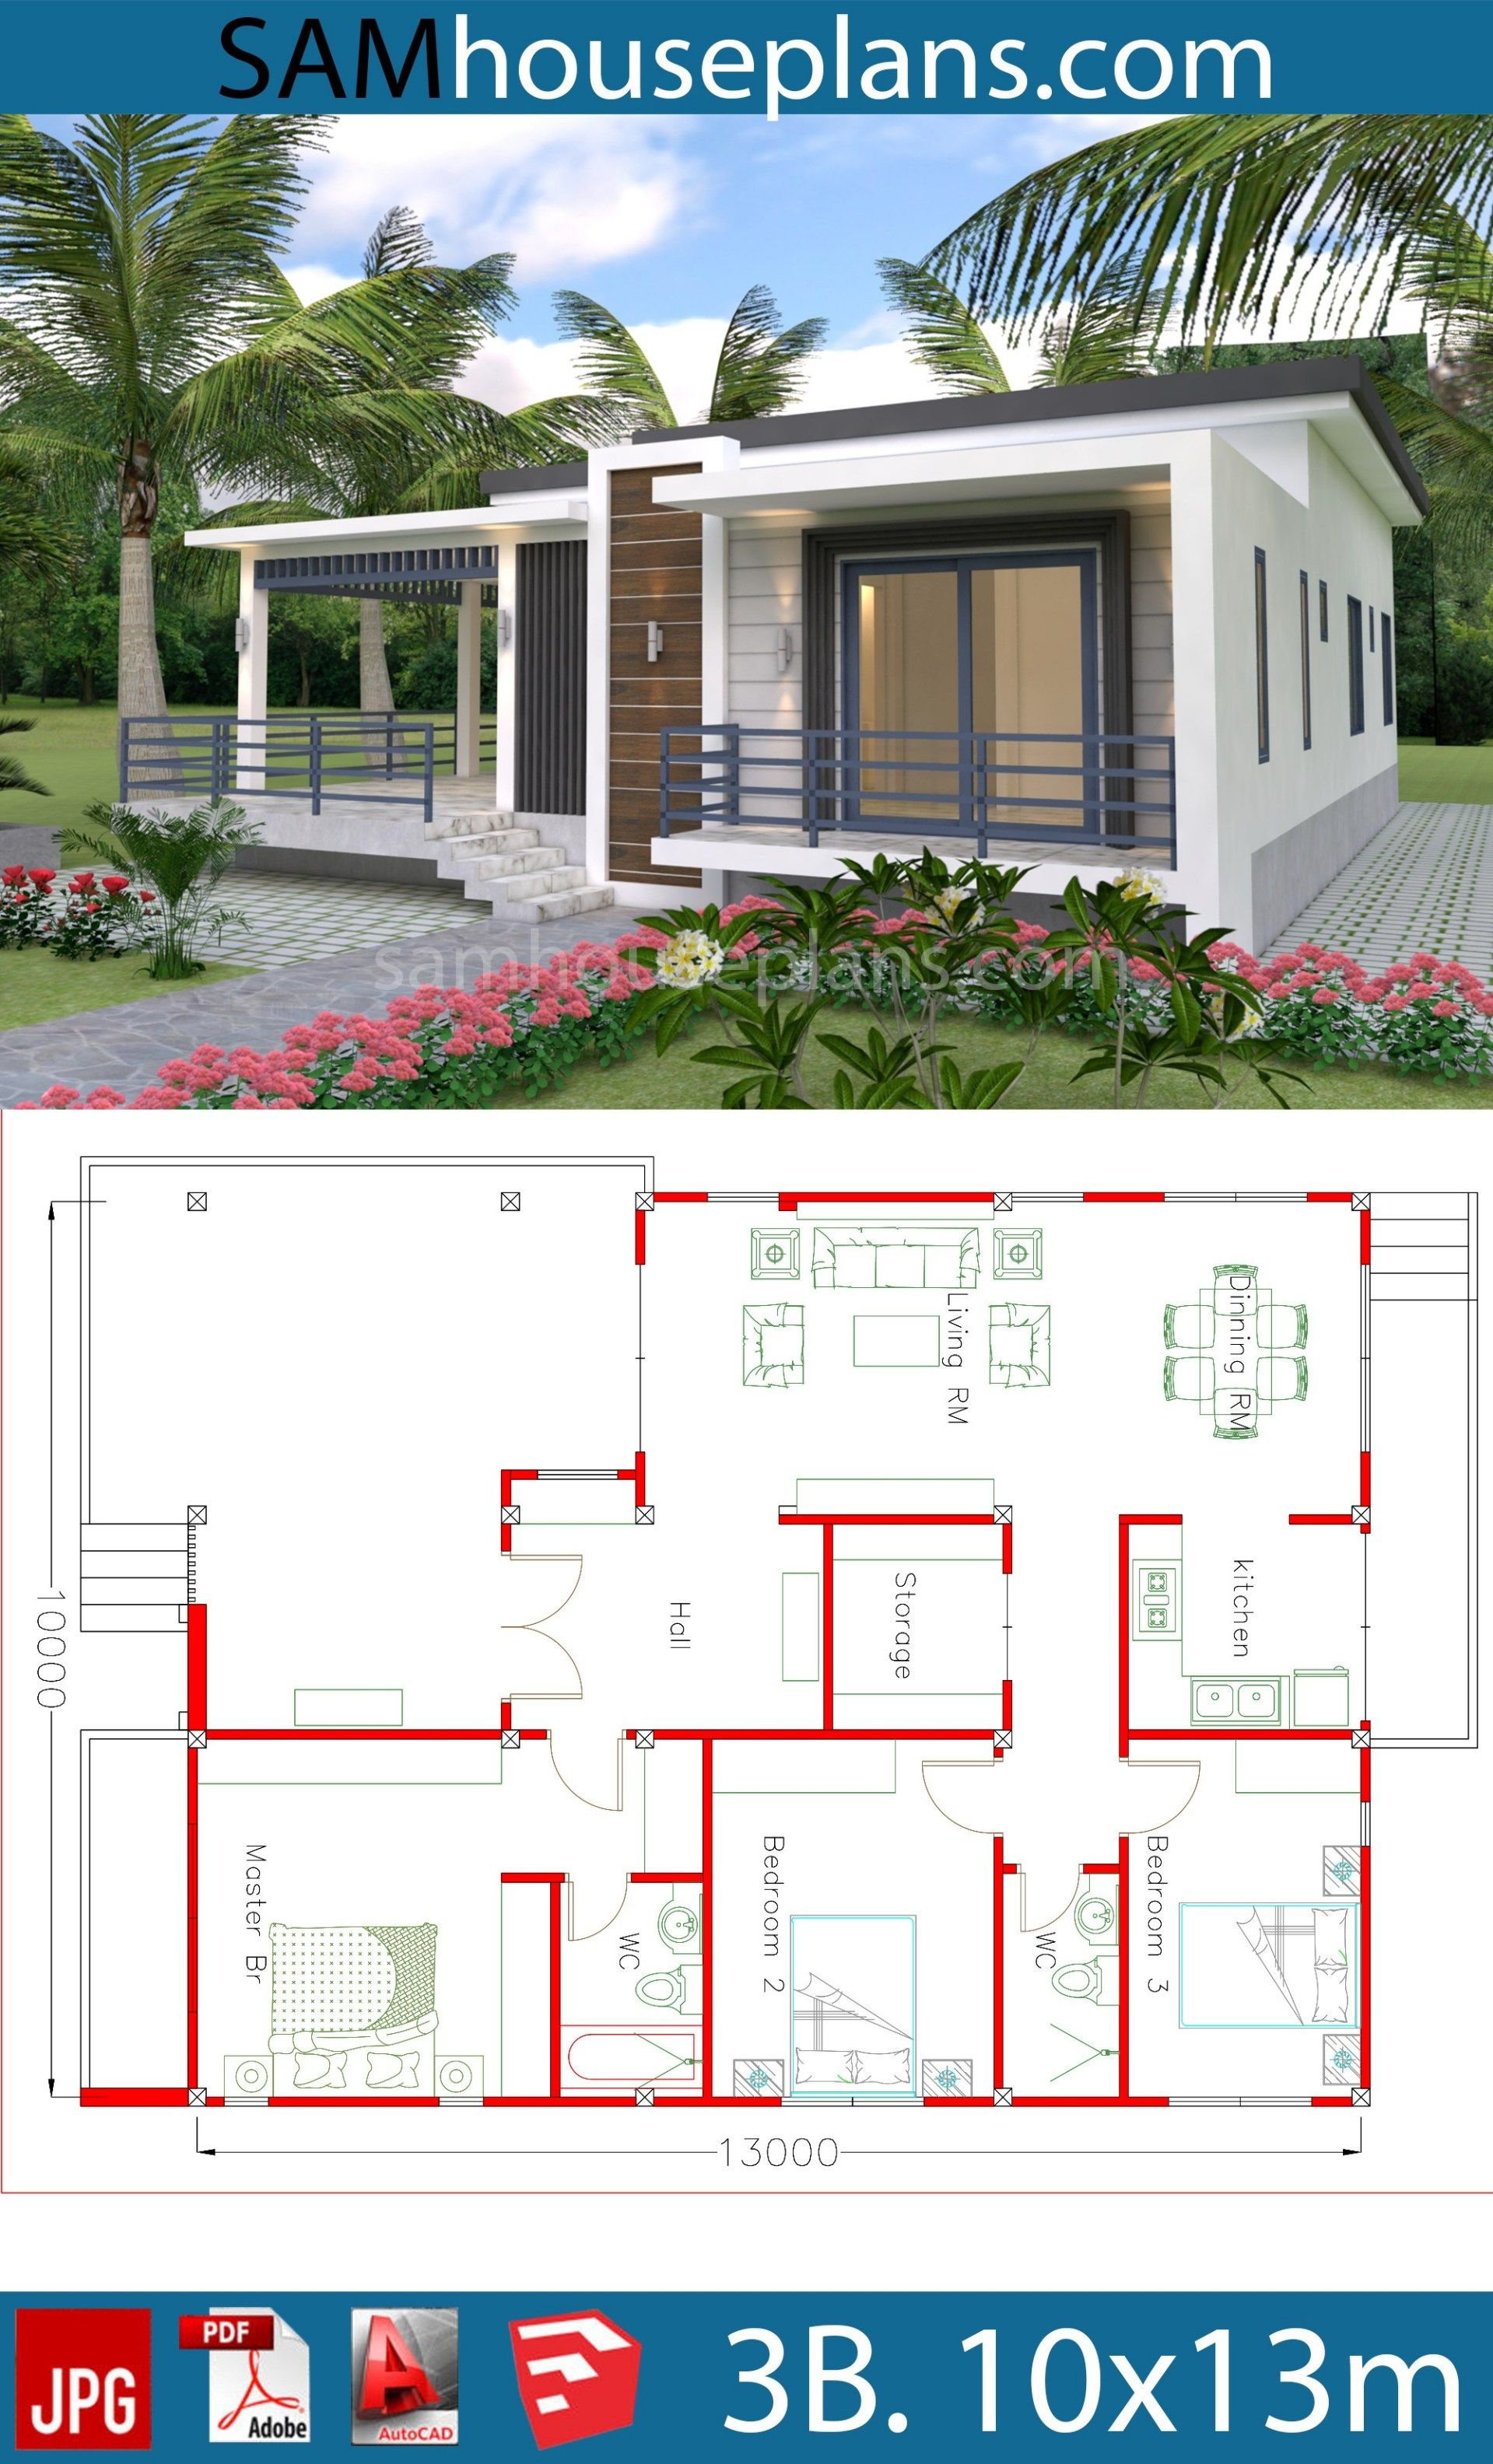 House Plans 10x13m With 3 Bedrooms Sam House Plans Affordable House Plans Beautiful House Plans House Construction Plan